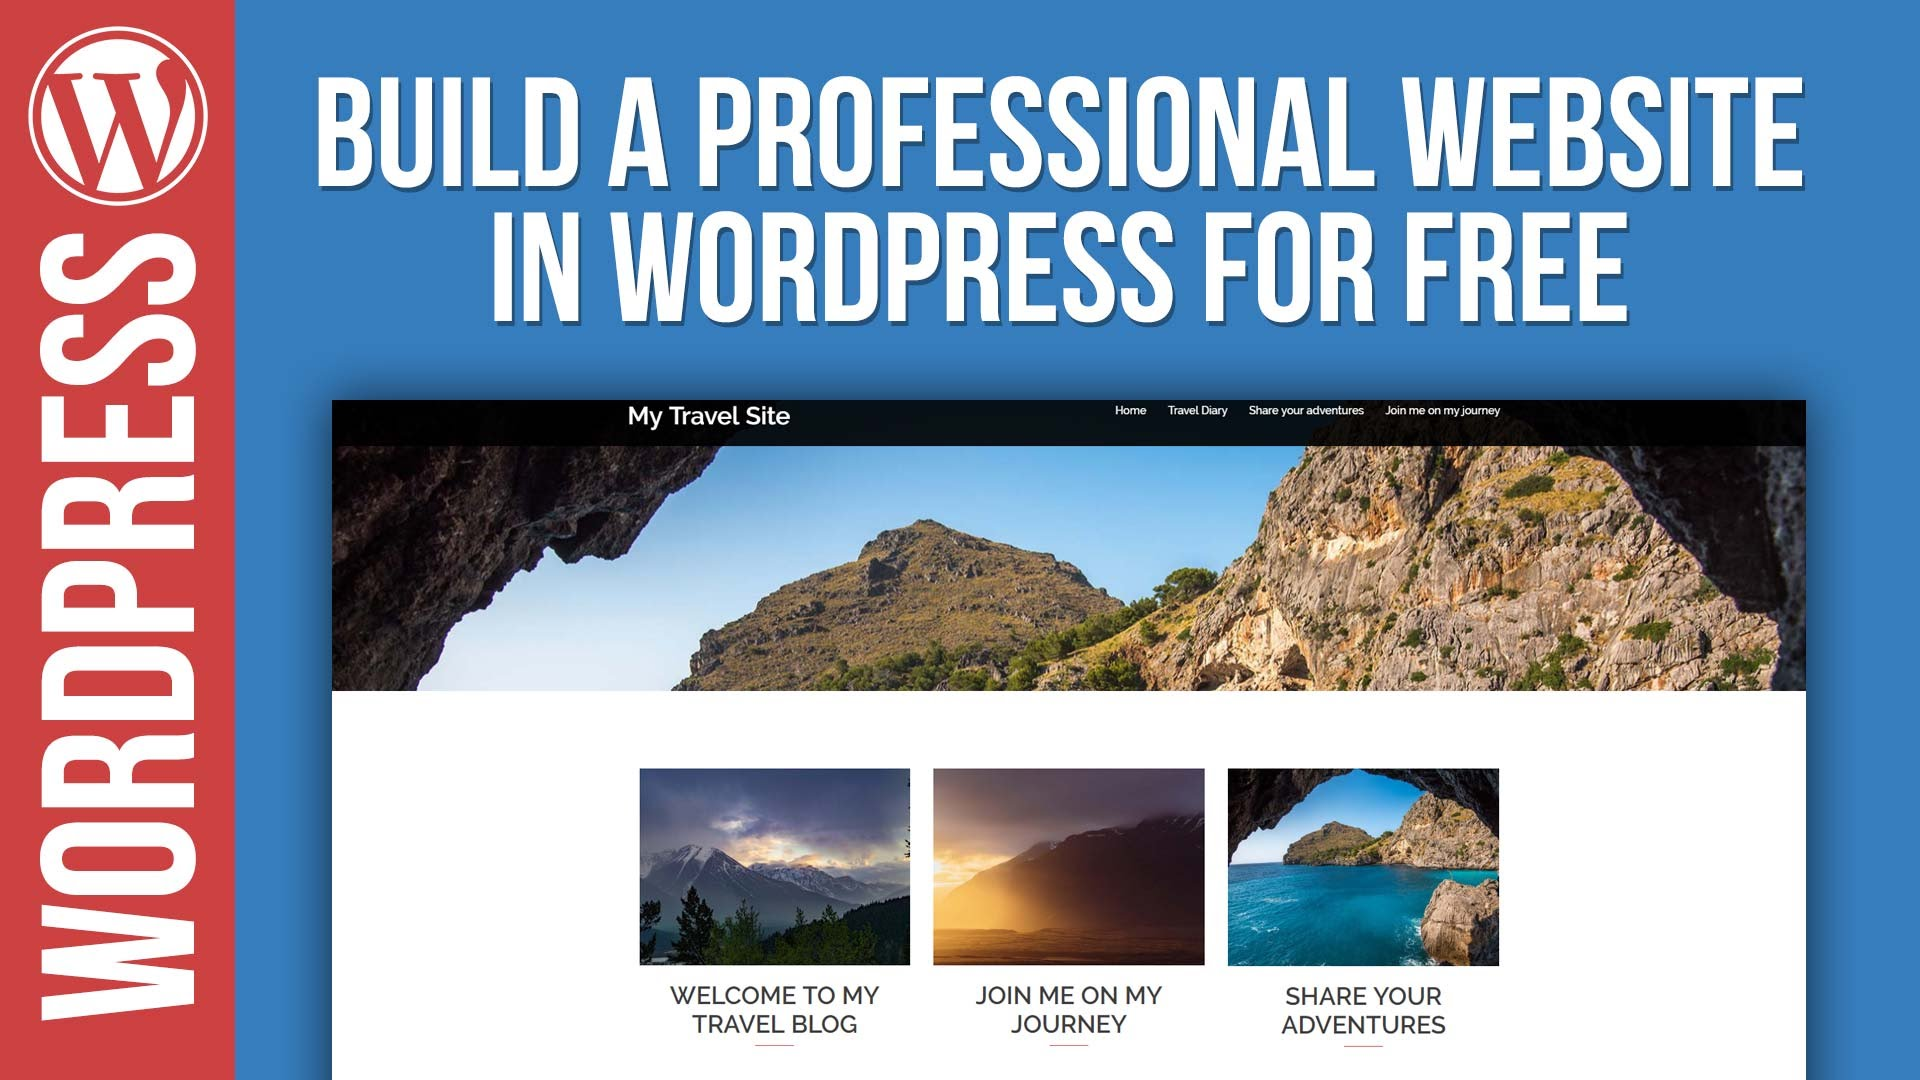 Build a Professional WordPress Website for Free